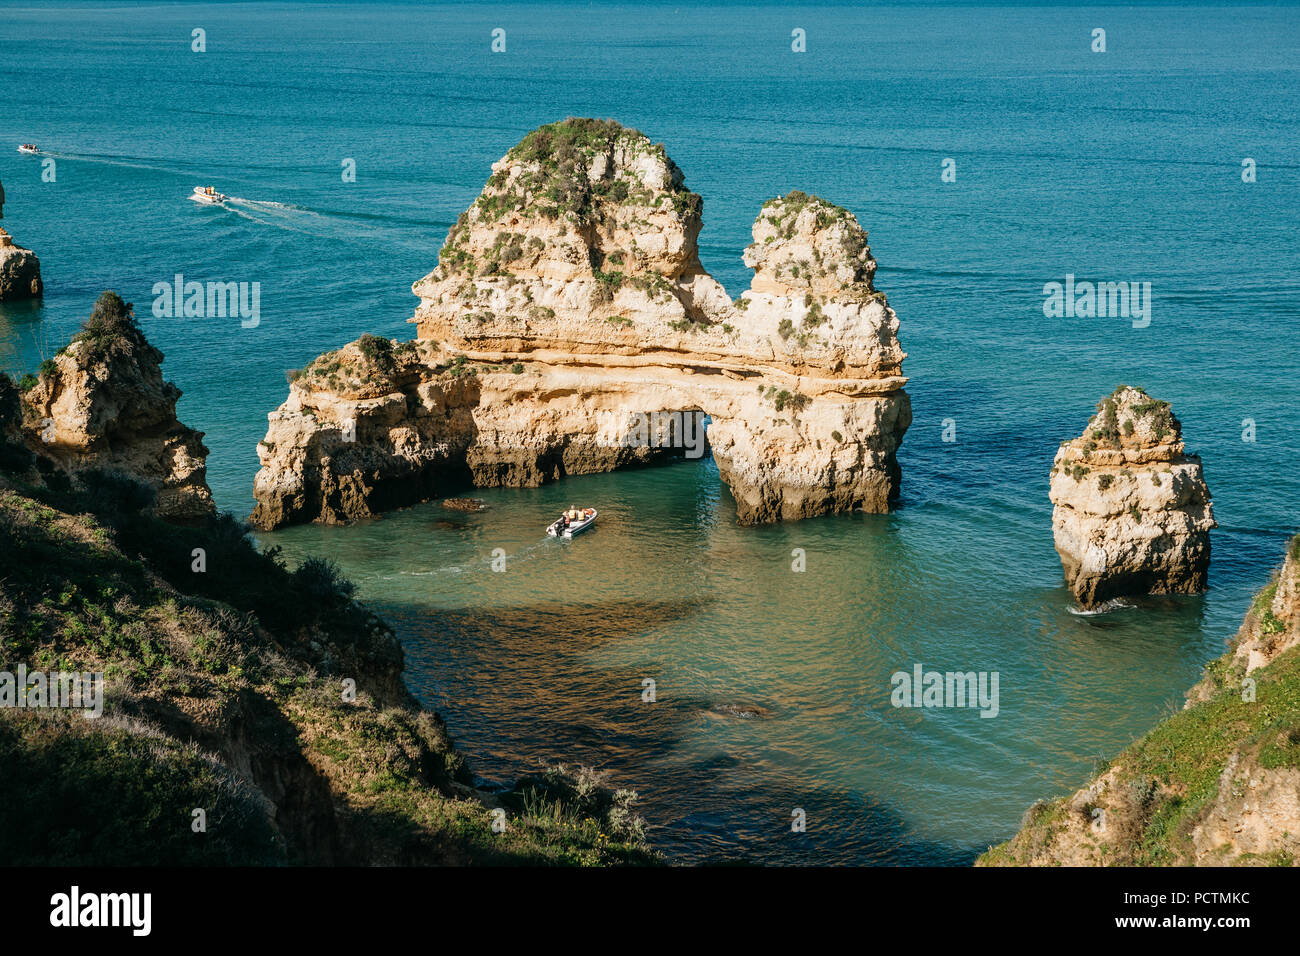 Beautiful views of the Atlantic Ocean off the coast of Portugal near the city of Lagos. A sea boat sails along the blue or turquoise water. - Stock Image